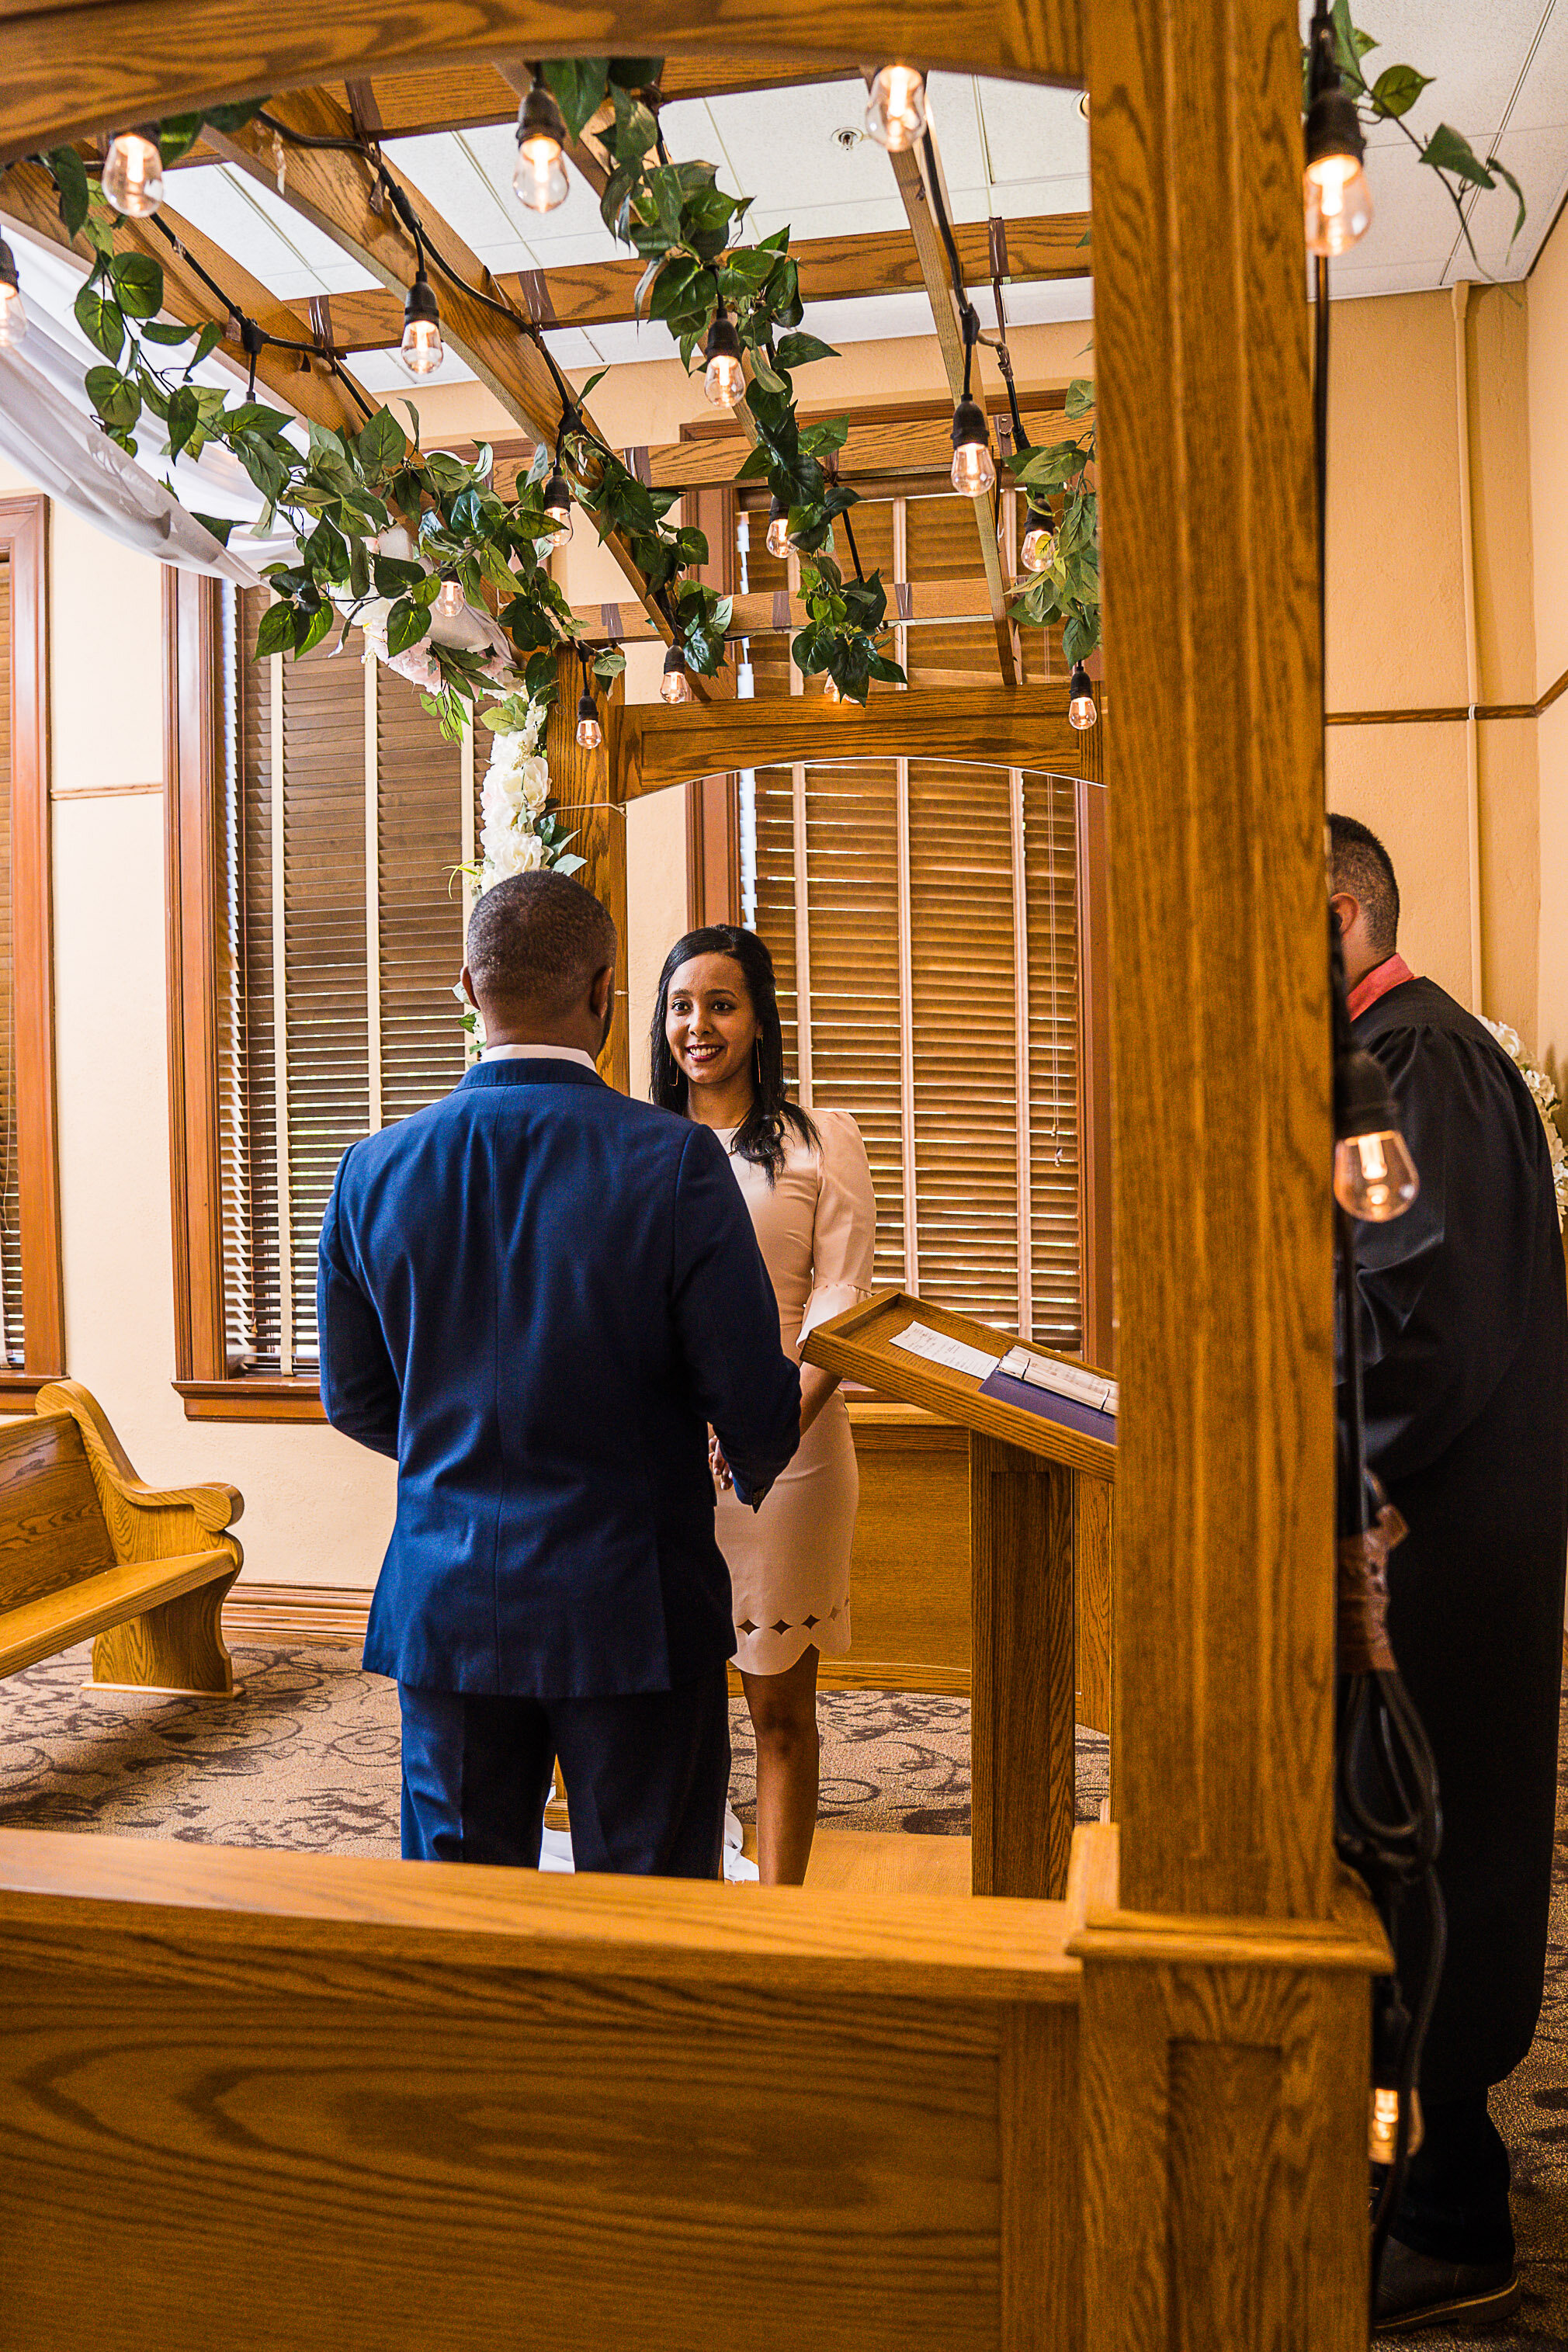 sewit-elopement-orange-county-santa-ana-courthouse-10-2.jpg